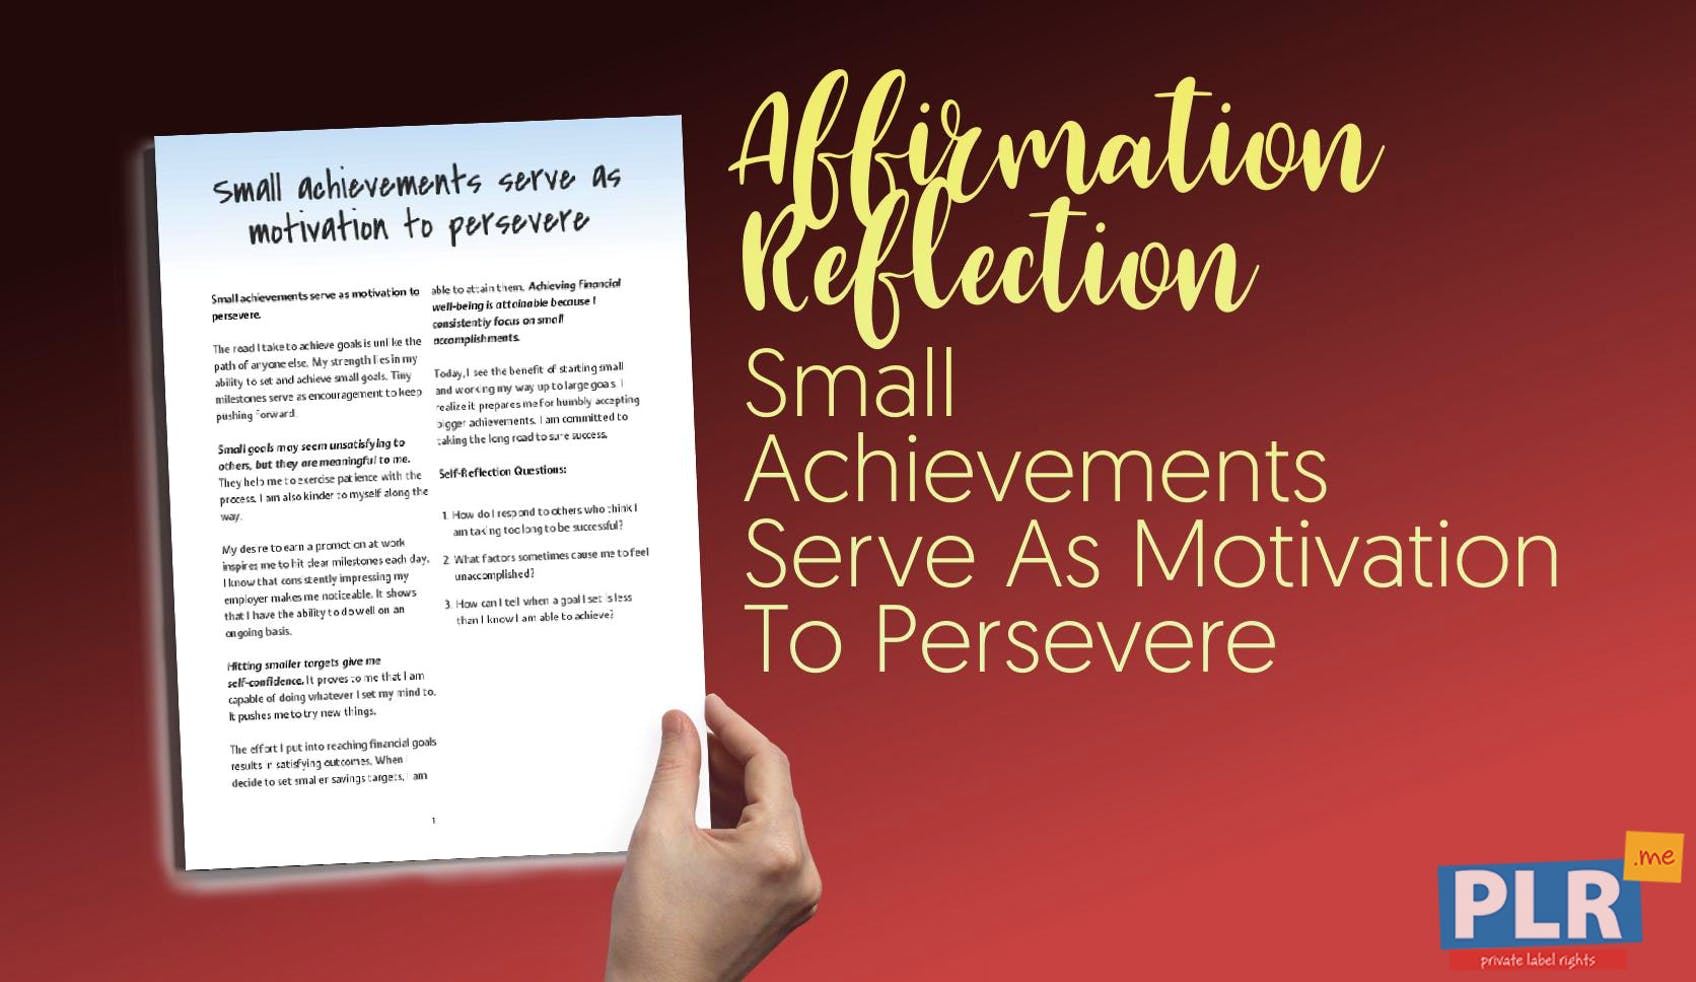 Small Achievements Serve As Motivation To Persevere